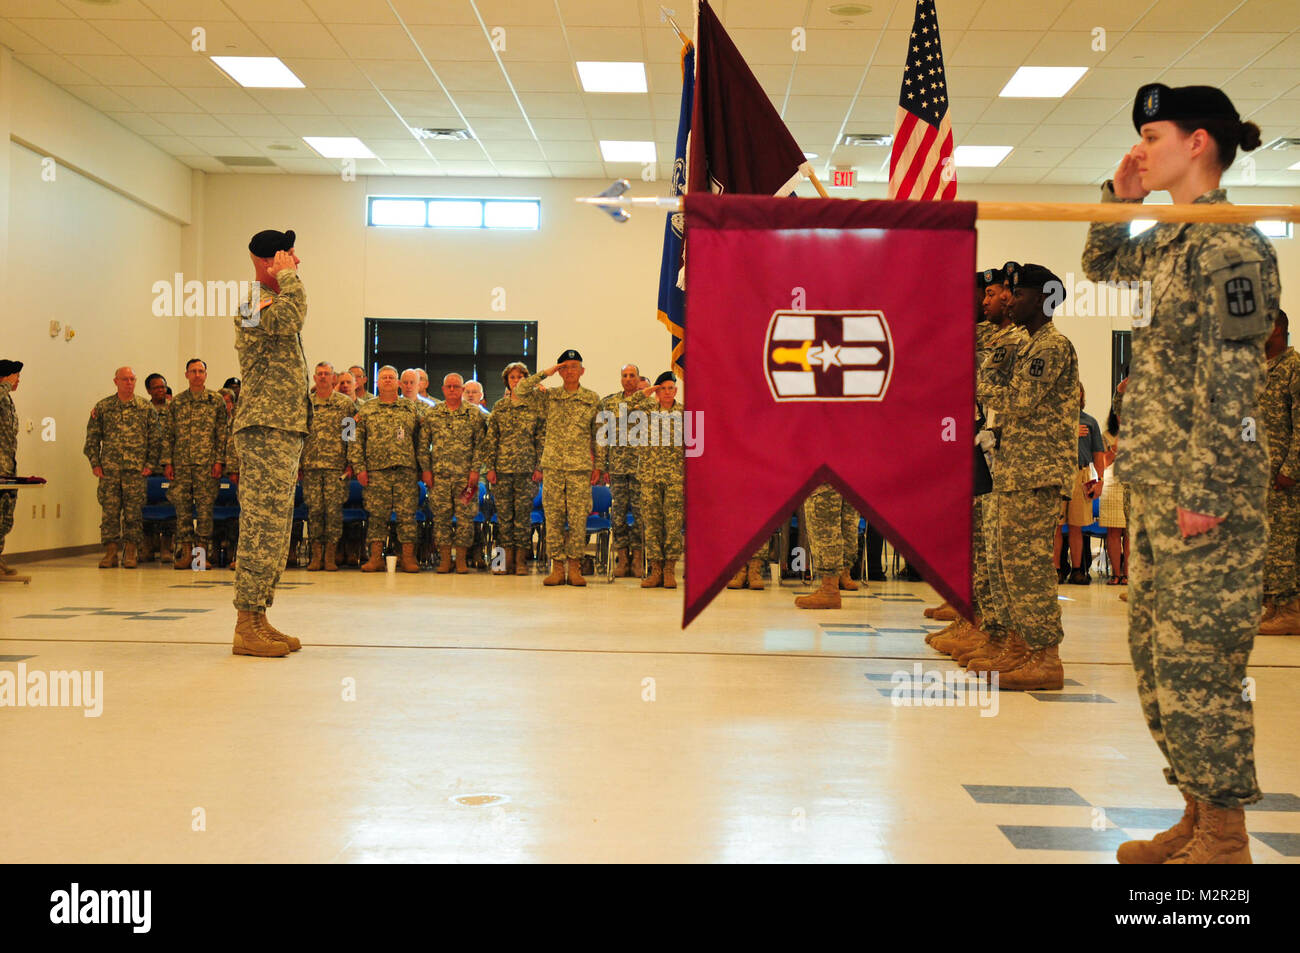 Lt. Col. Michael Pullen, Commander of Troops, and Soldiers of the 807th MDSC render honors to the nation during - Stock Image